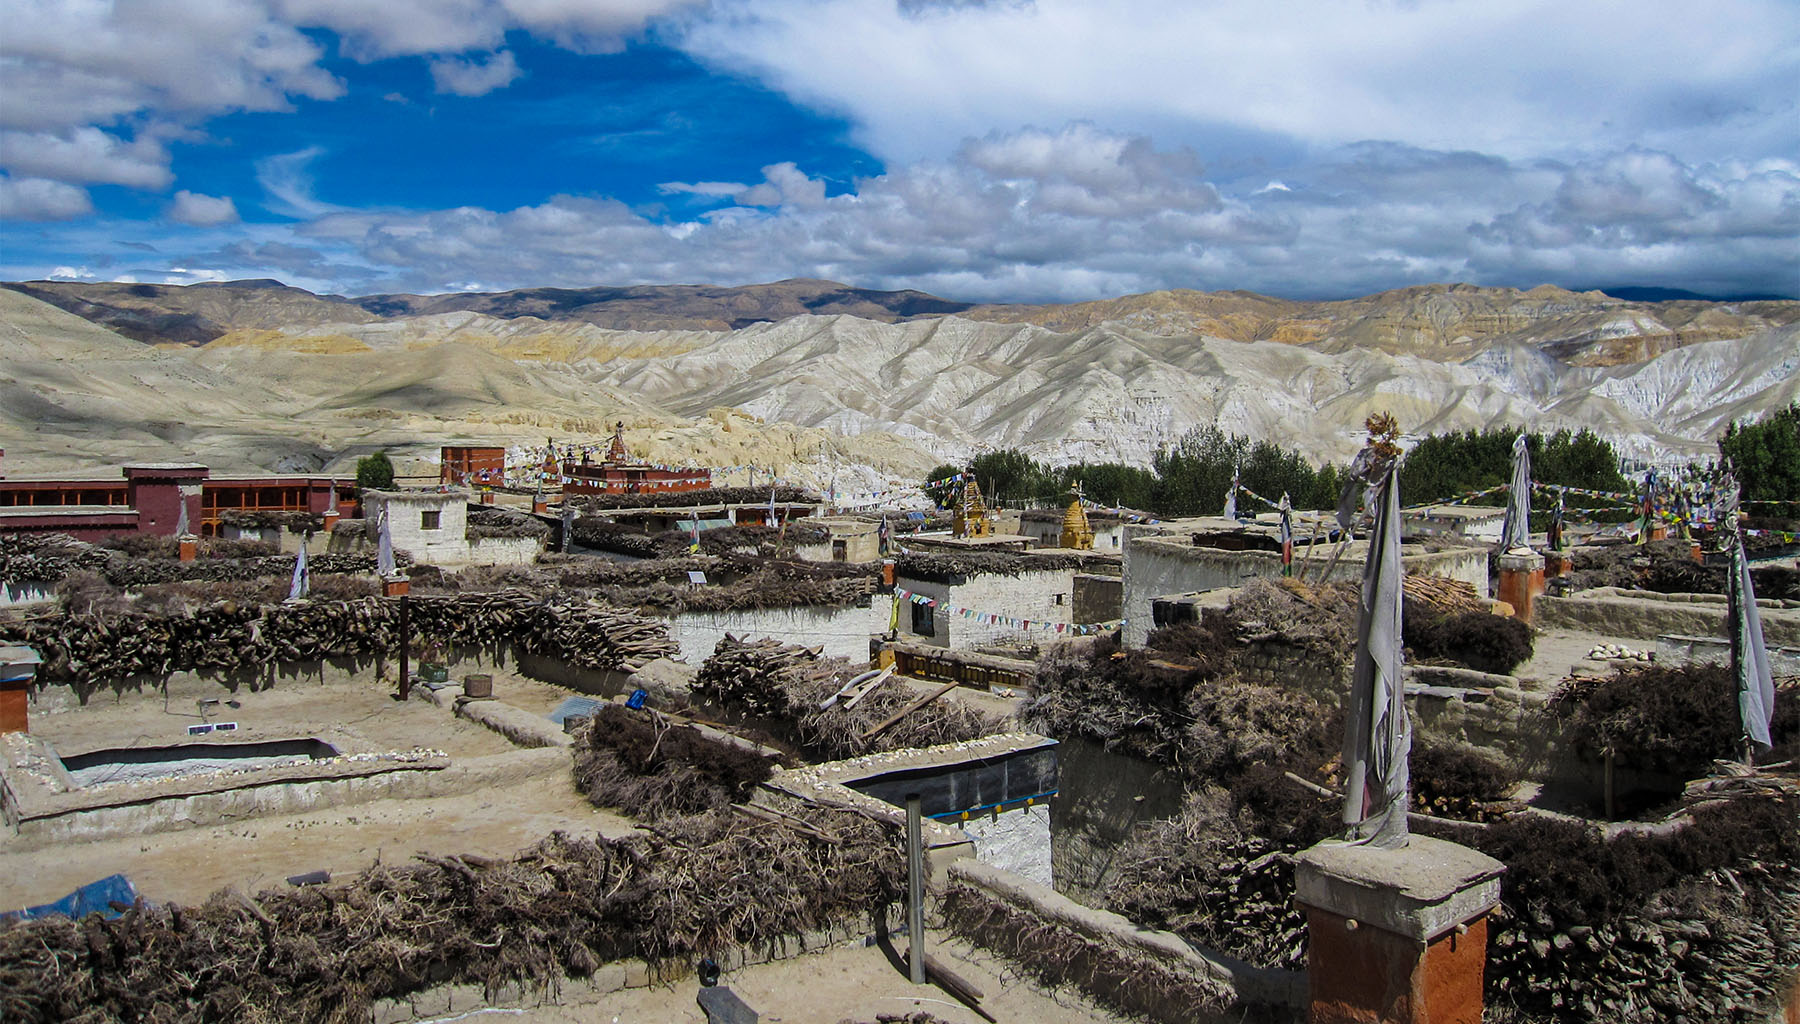 https://www.insidehimalayas.com/wp-content/uploads/2017/04/lo-manthang.jpg